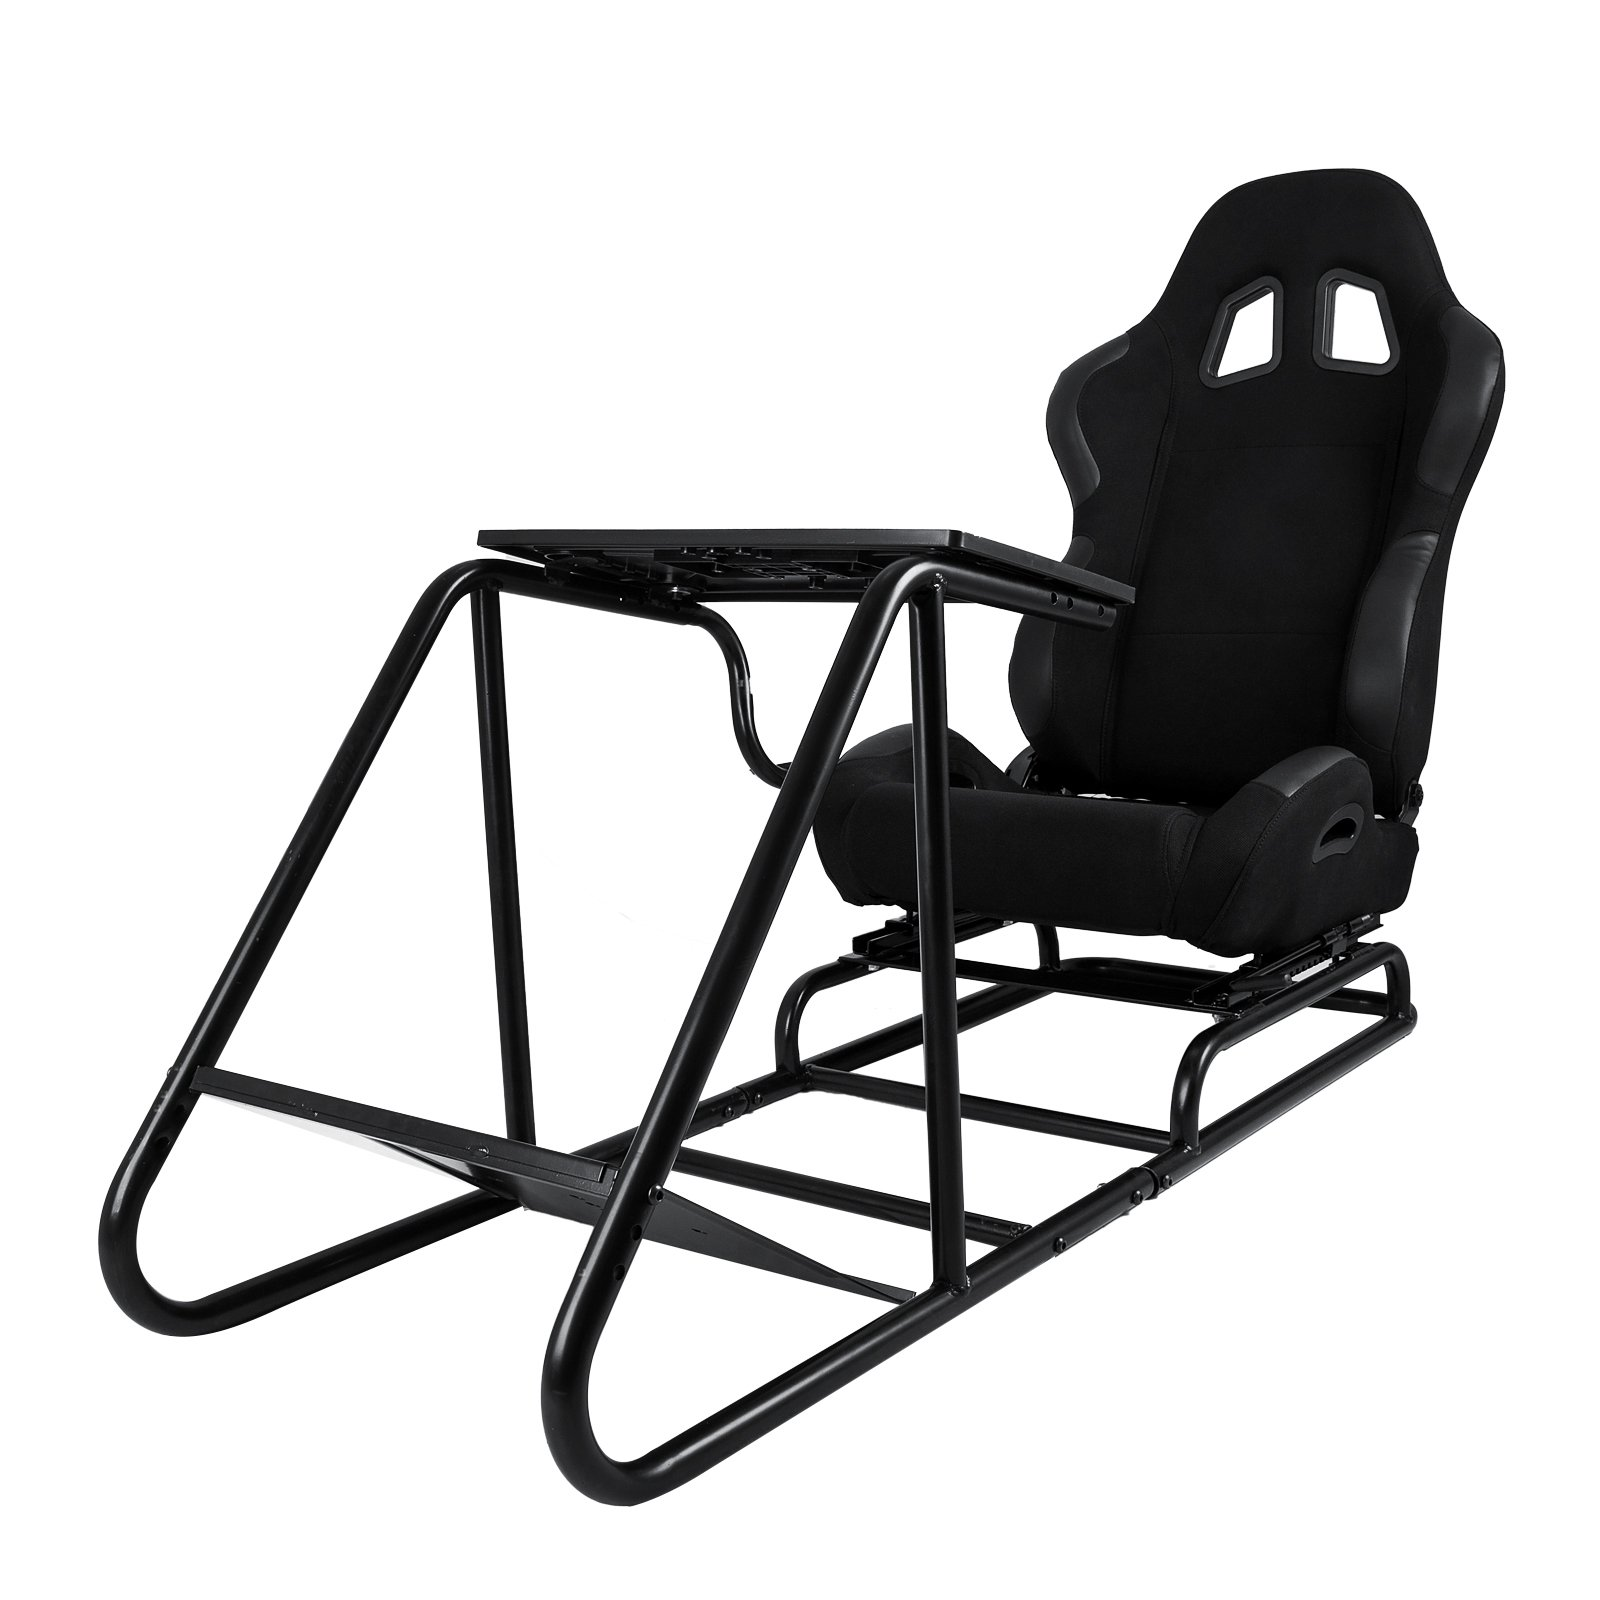 Happybuy Video Gaming Seat Driving Race Chair Simulator Cockpit with Gear Shift Mount for PS3 PS4 XBOX  sc 1 st  Amzn.promo & Happybuy Video Gaming Seat Driving Race Chair Simulator Cockpit with ...